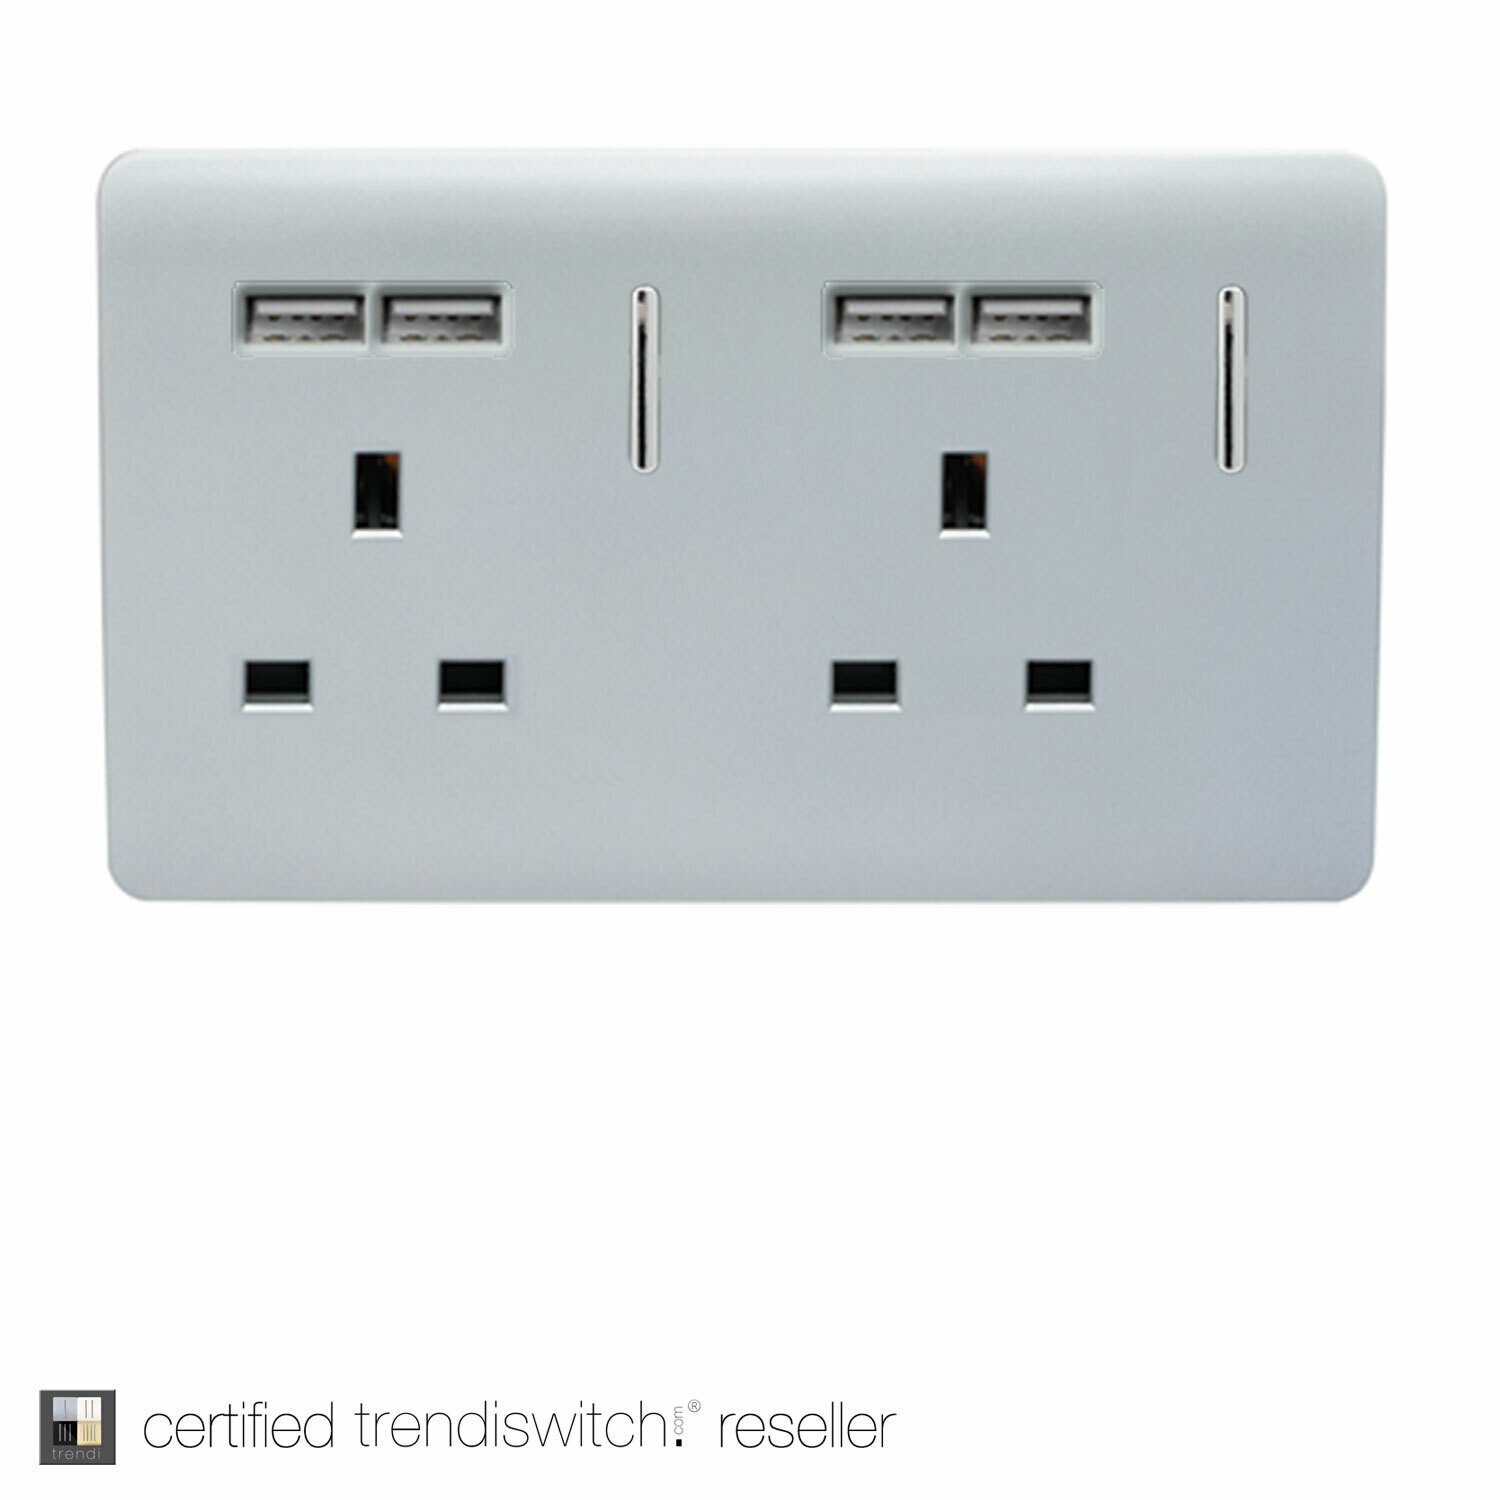 Trendi, Artistic Modern 2 Gang 13Amp Switched Double Socket With 4X 2.1Mah USB Silver Finish, BRITISH MADE, 5yrs warranty